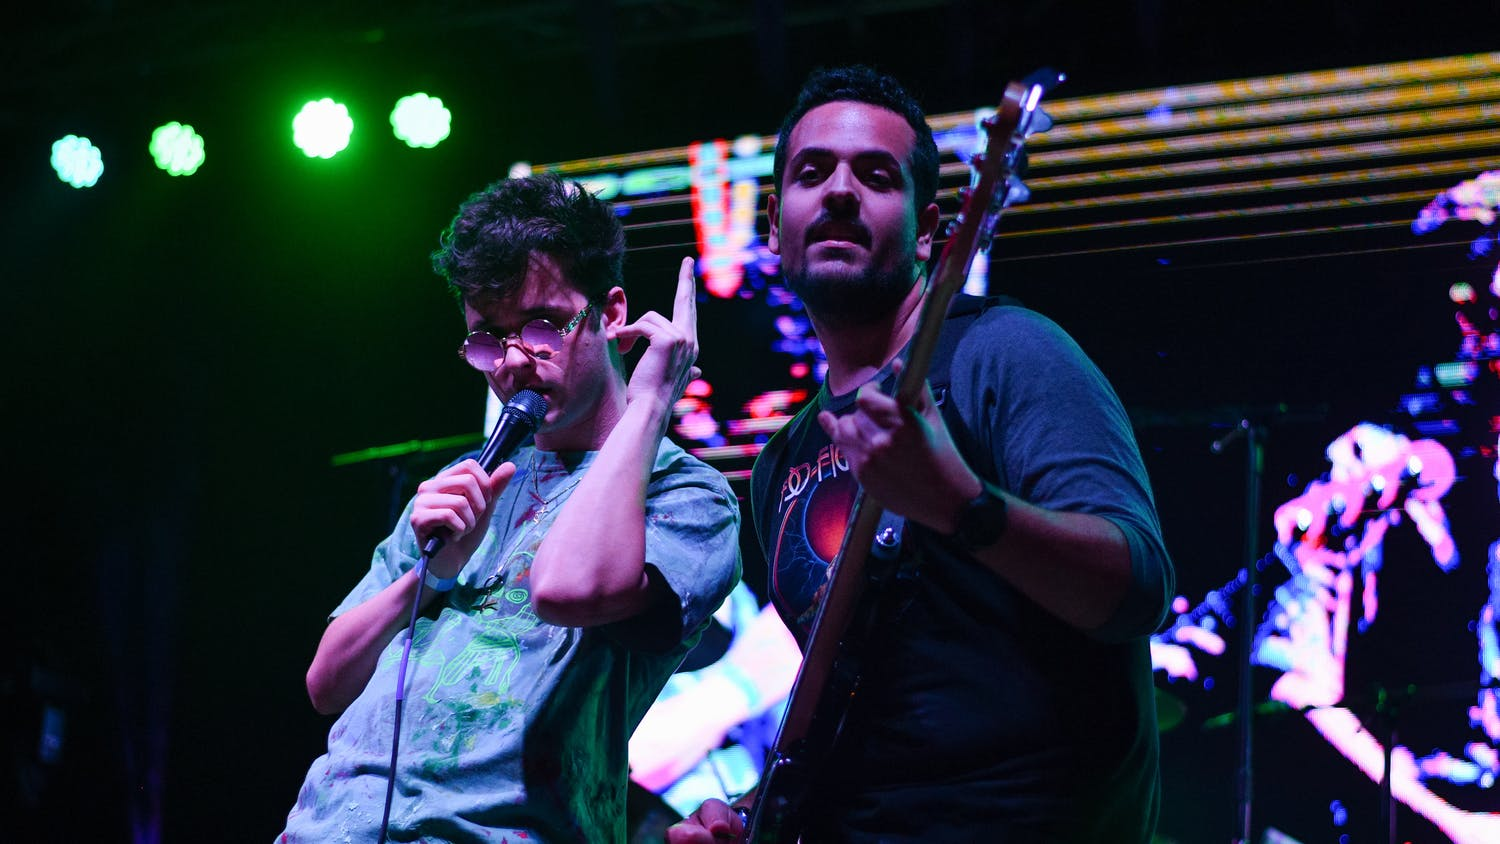 Robbie Kingsley, the band's lead singer, and Andre Escobar, the bassist, perform during the 2019 Heartwood Music Festival on Feb. 23.